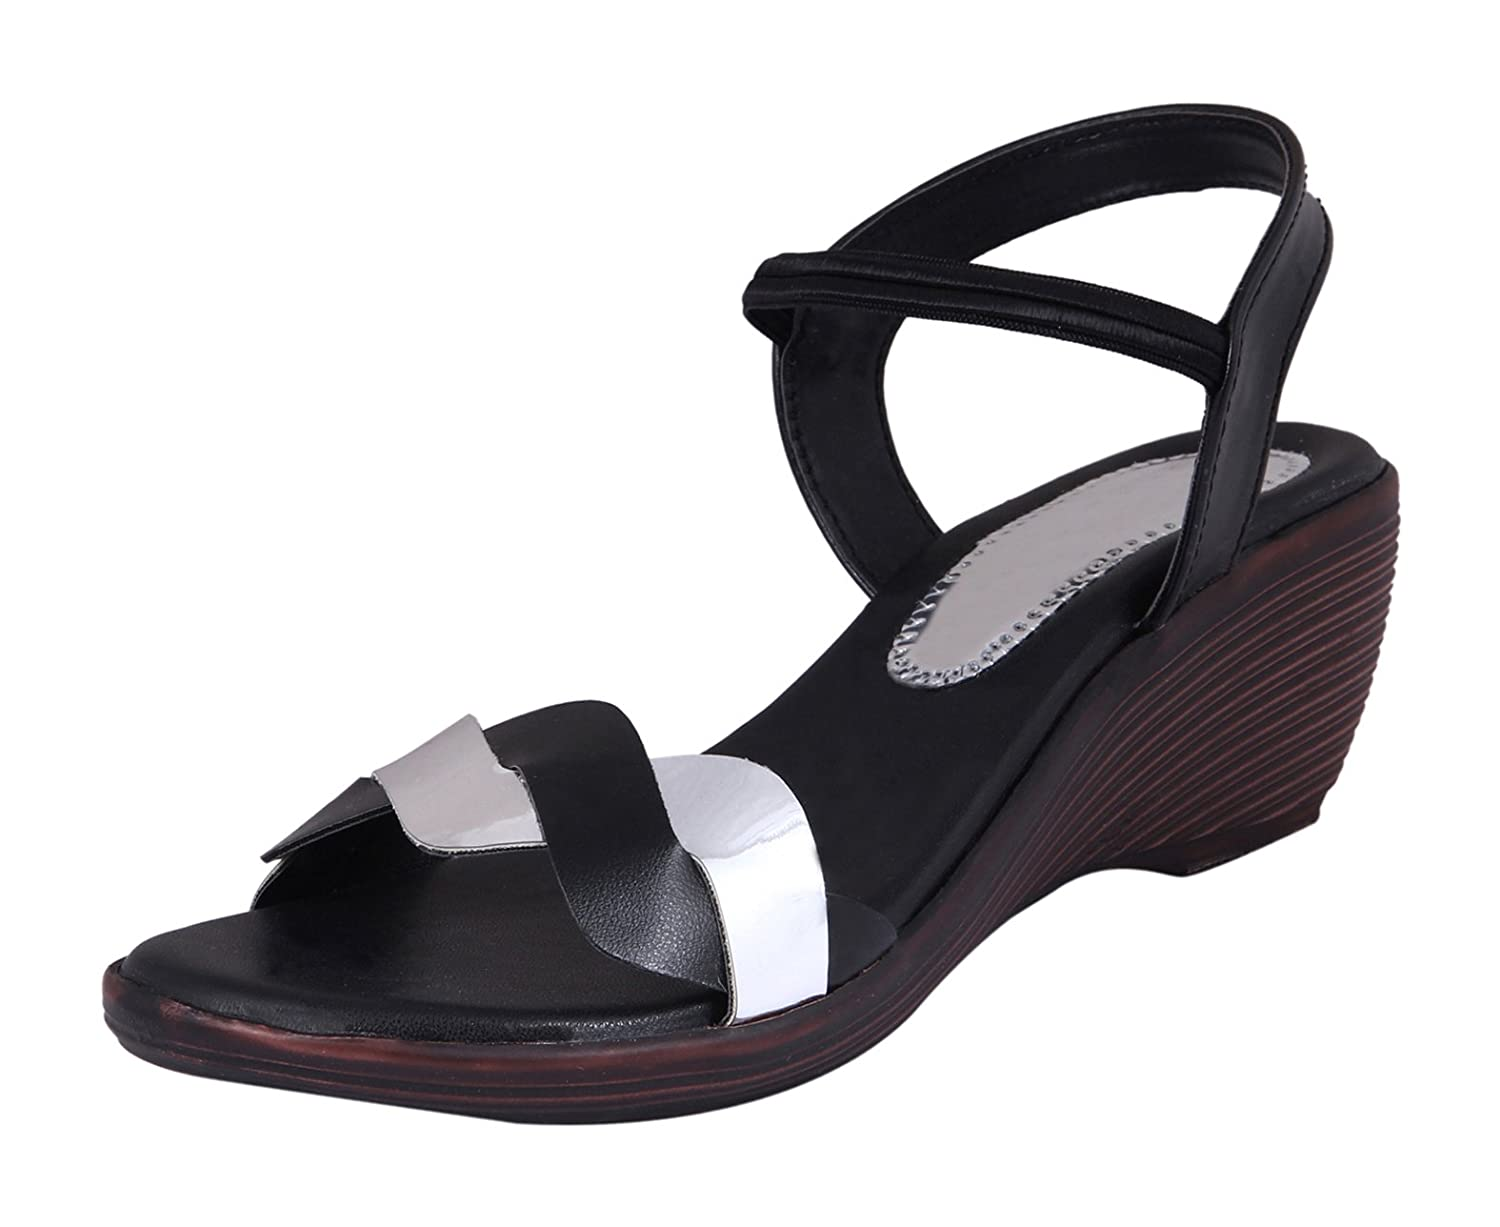 RIGHT STEPS Women's Black Leather Fashion Sandals - 5 UK